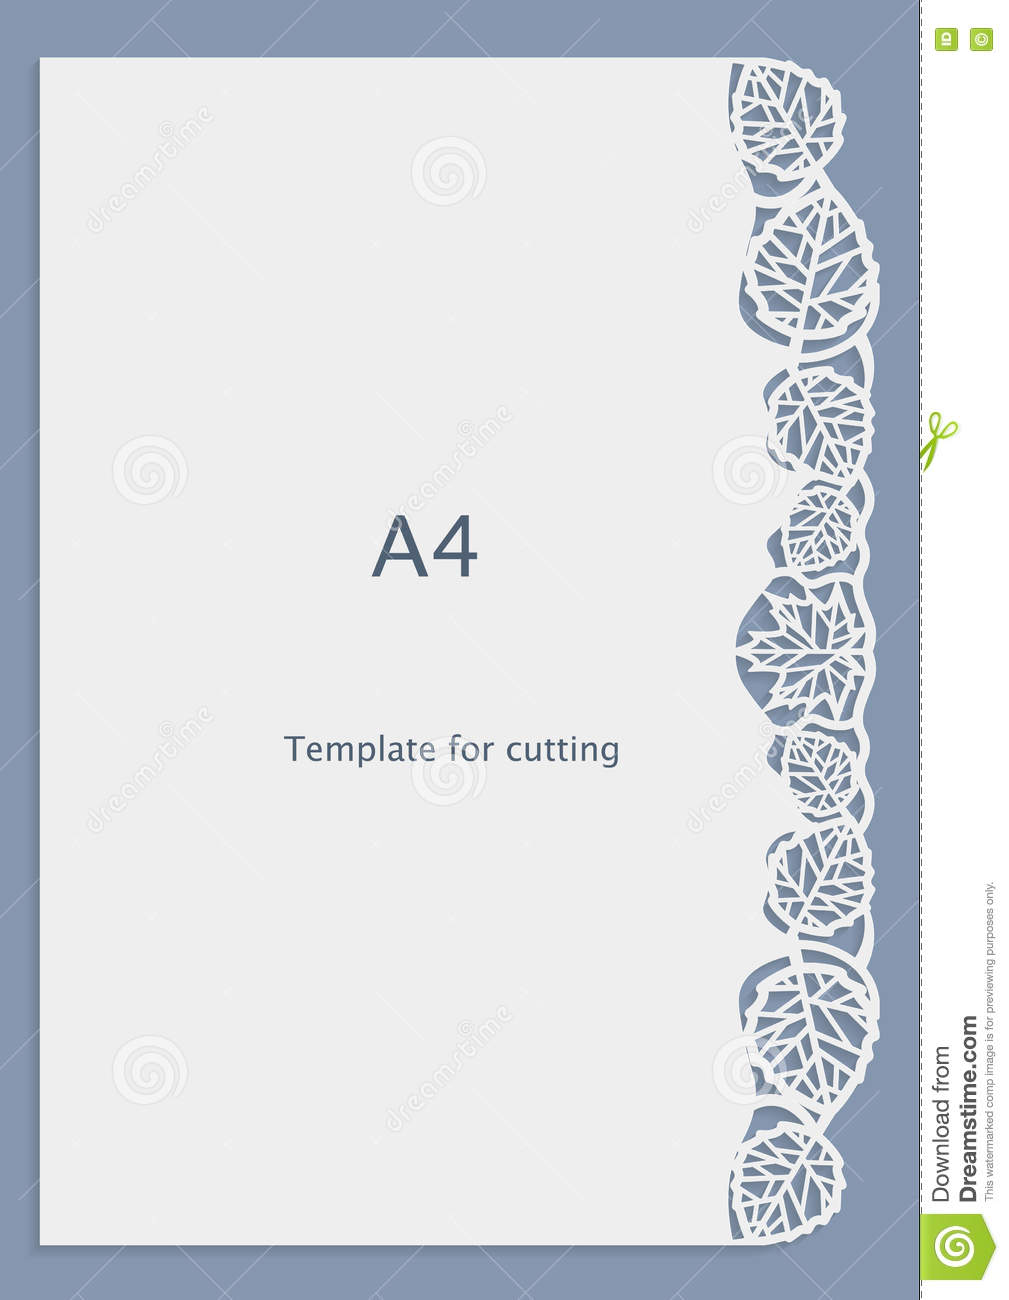 A4 Paper Lace Greeting Card Wedding Invitation White Pattern Cut